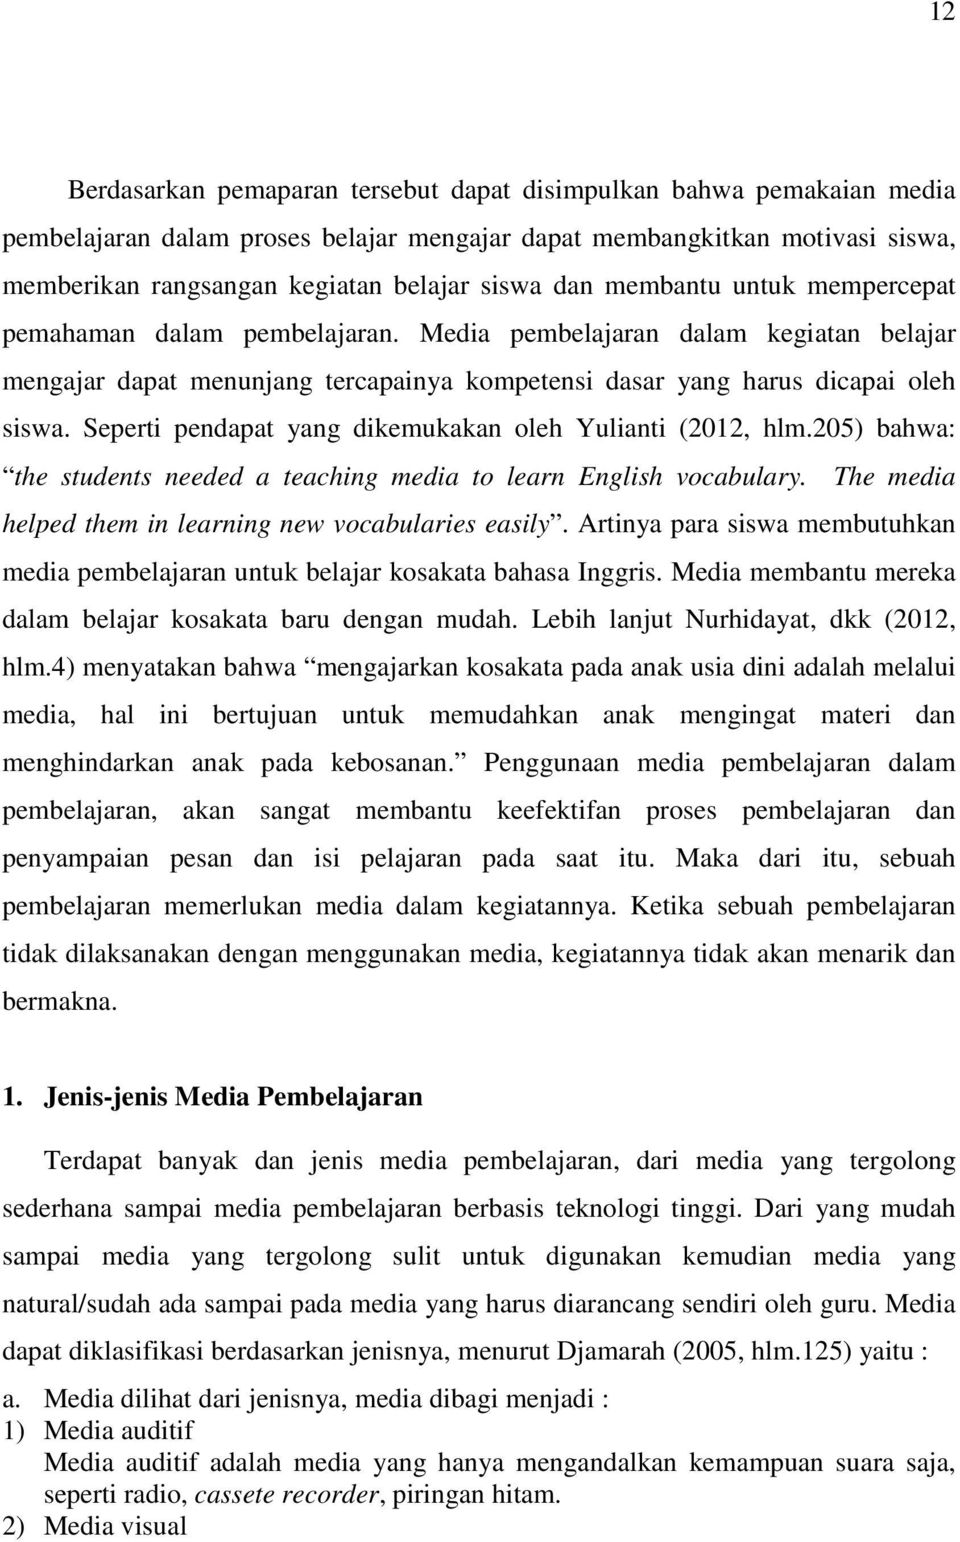 Seperti pendapat yang dikemukakan oleh Yulianti (2012, hlm.205) bahwa: the students needed a teaching media to learn English vocabulary. The media helped them in learning new vocabularies easily.